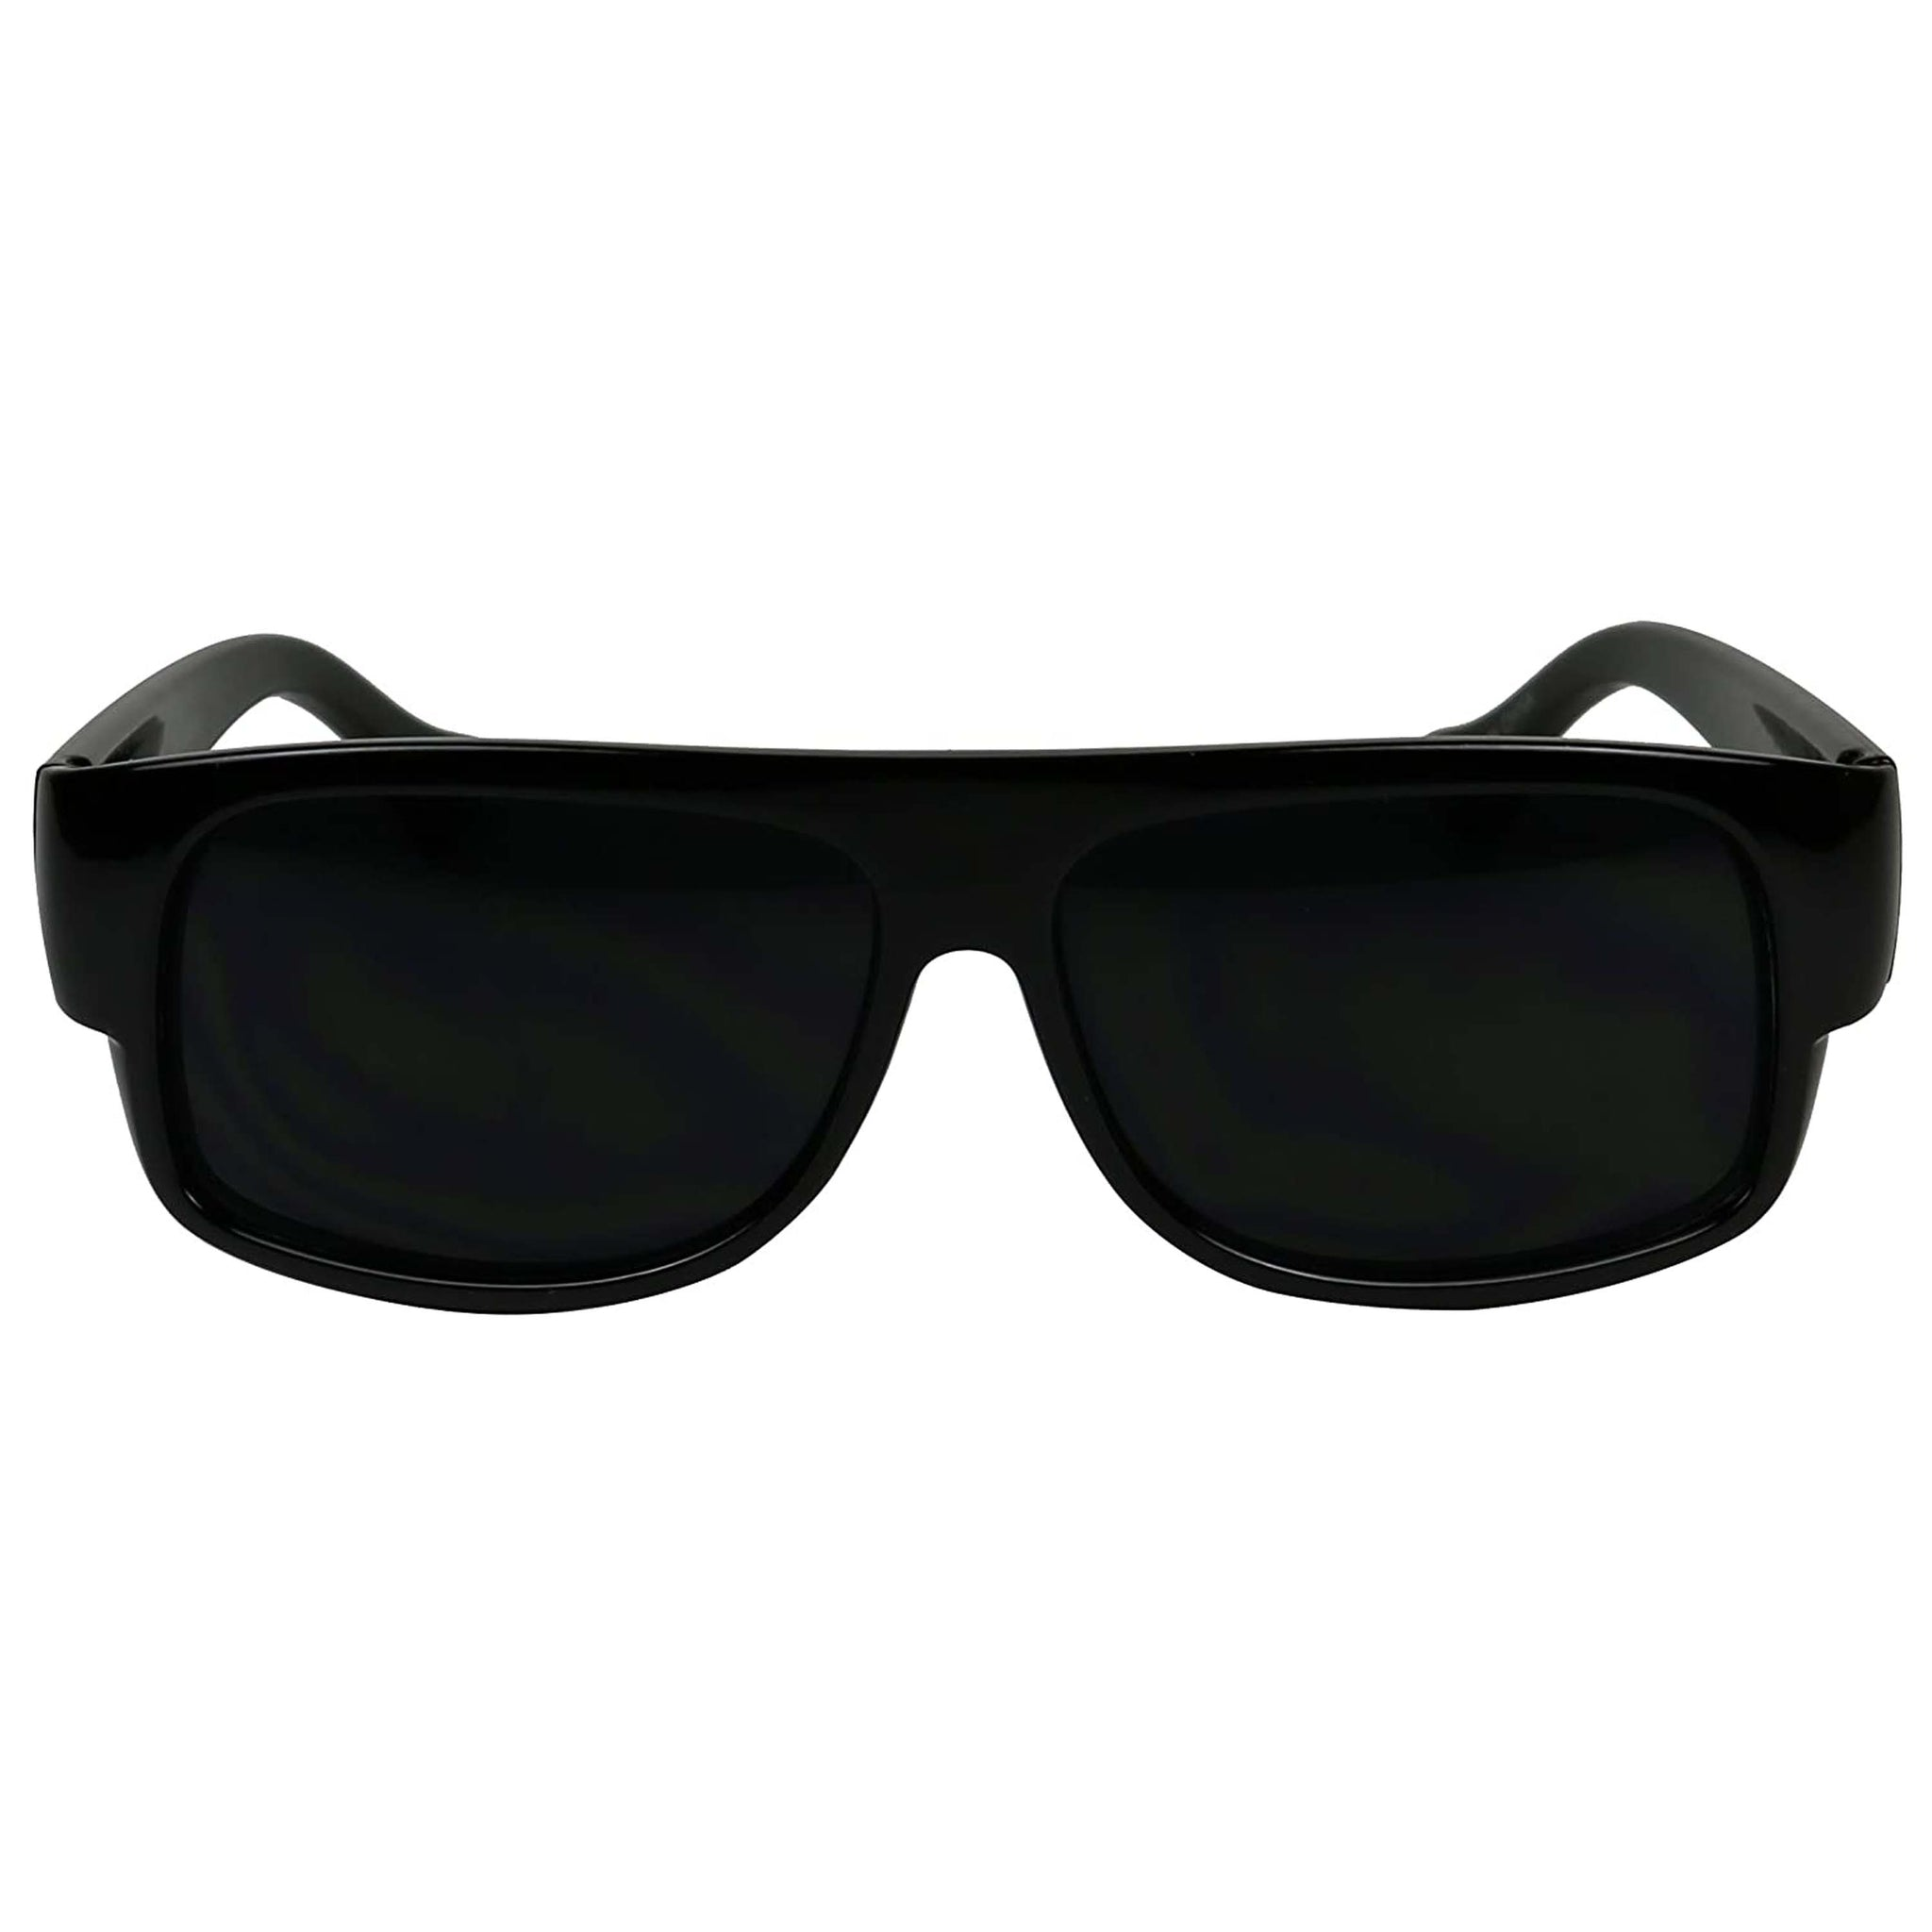 TYLER Oval Flat Top Locs Style Sunglasses UV Protection Vintage Eazy E Old School Gangsta Shades - ShadyVEU